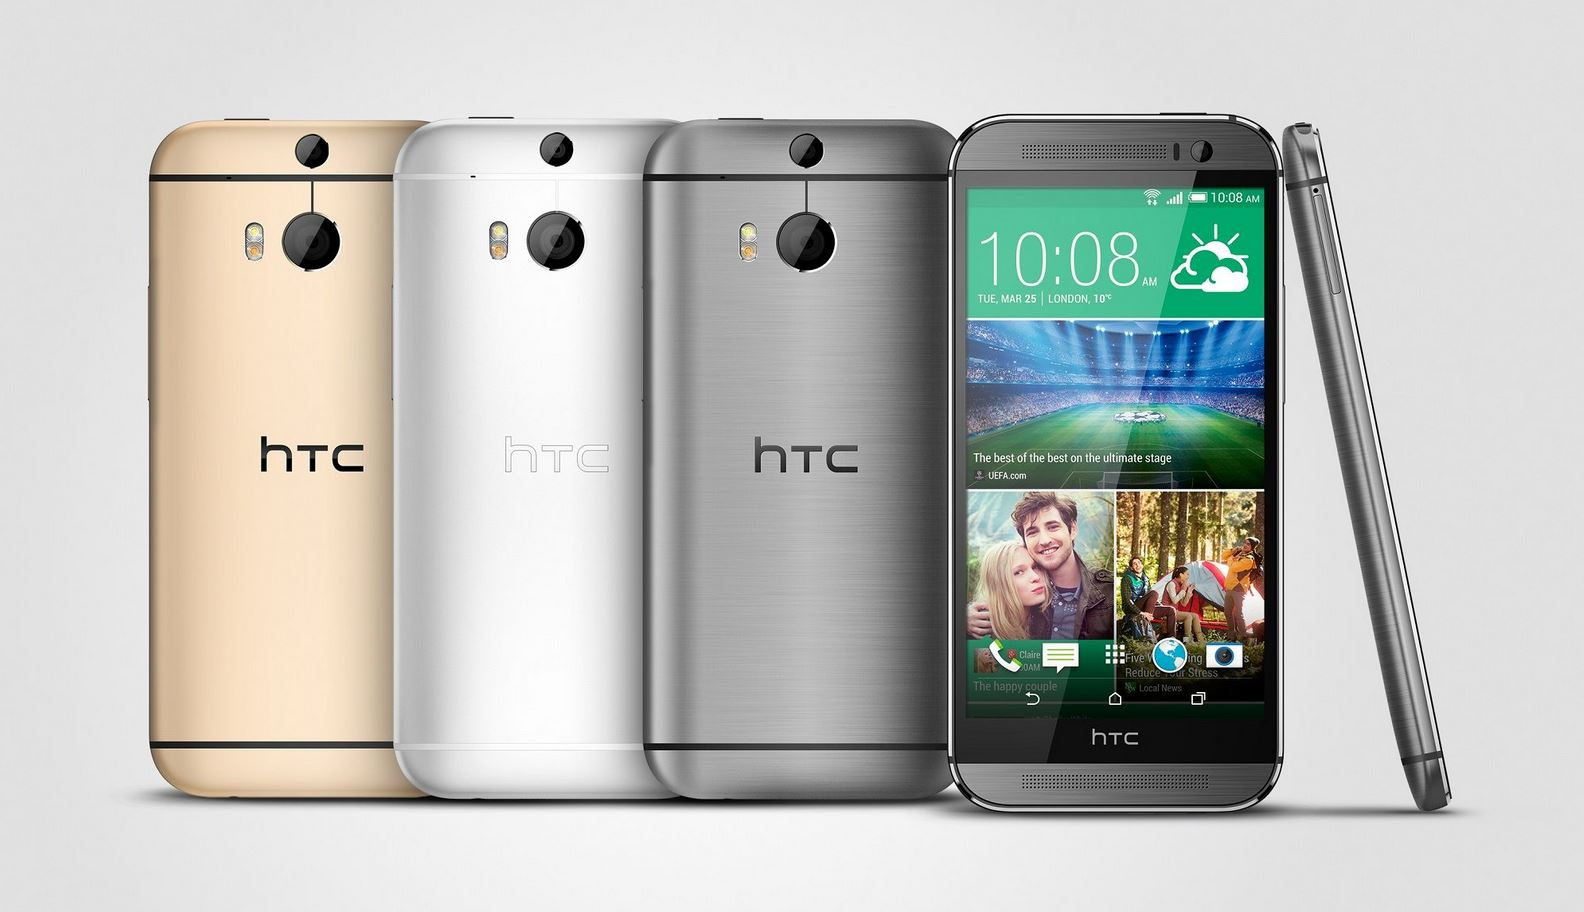 Android HTC HTC One M8 m8 one Update